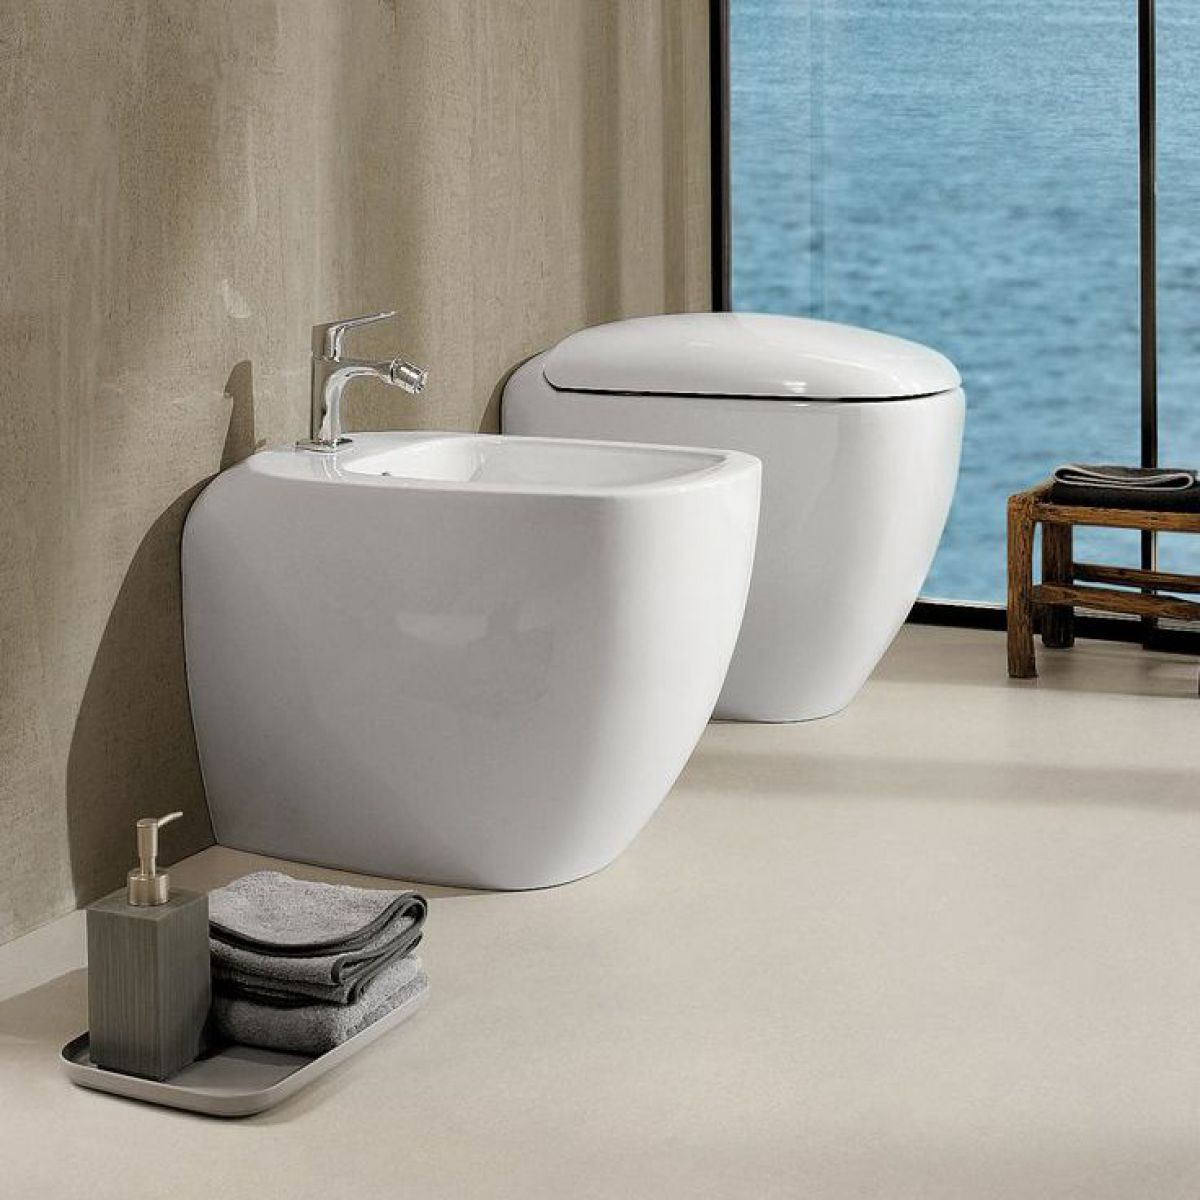 Geberit Citterio Floor Standing Back To Wall Bidet